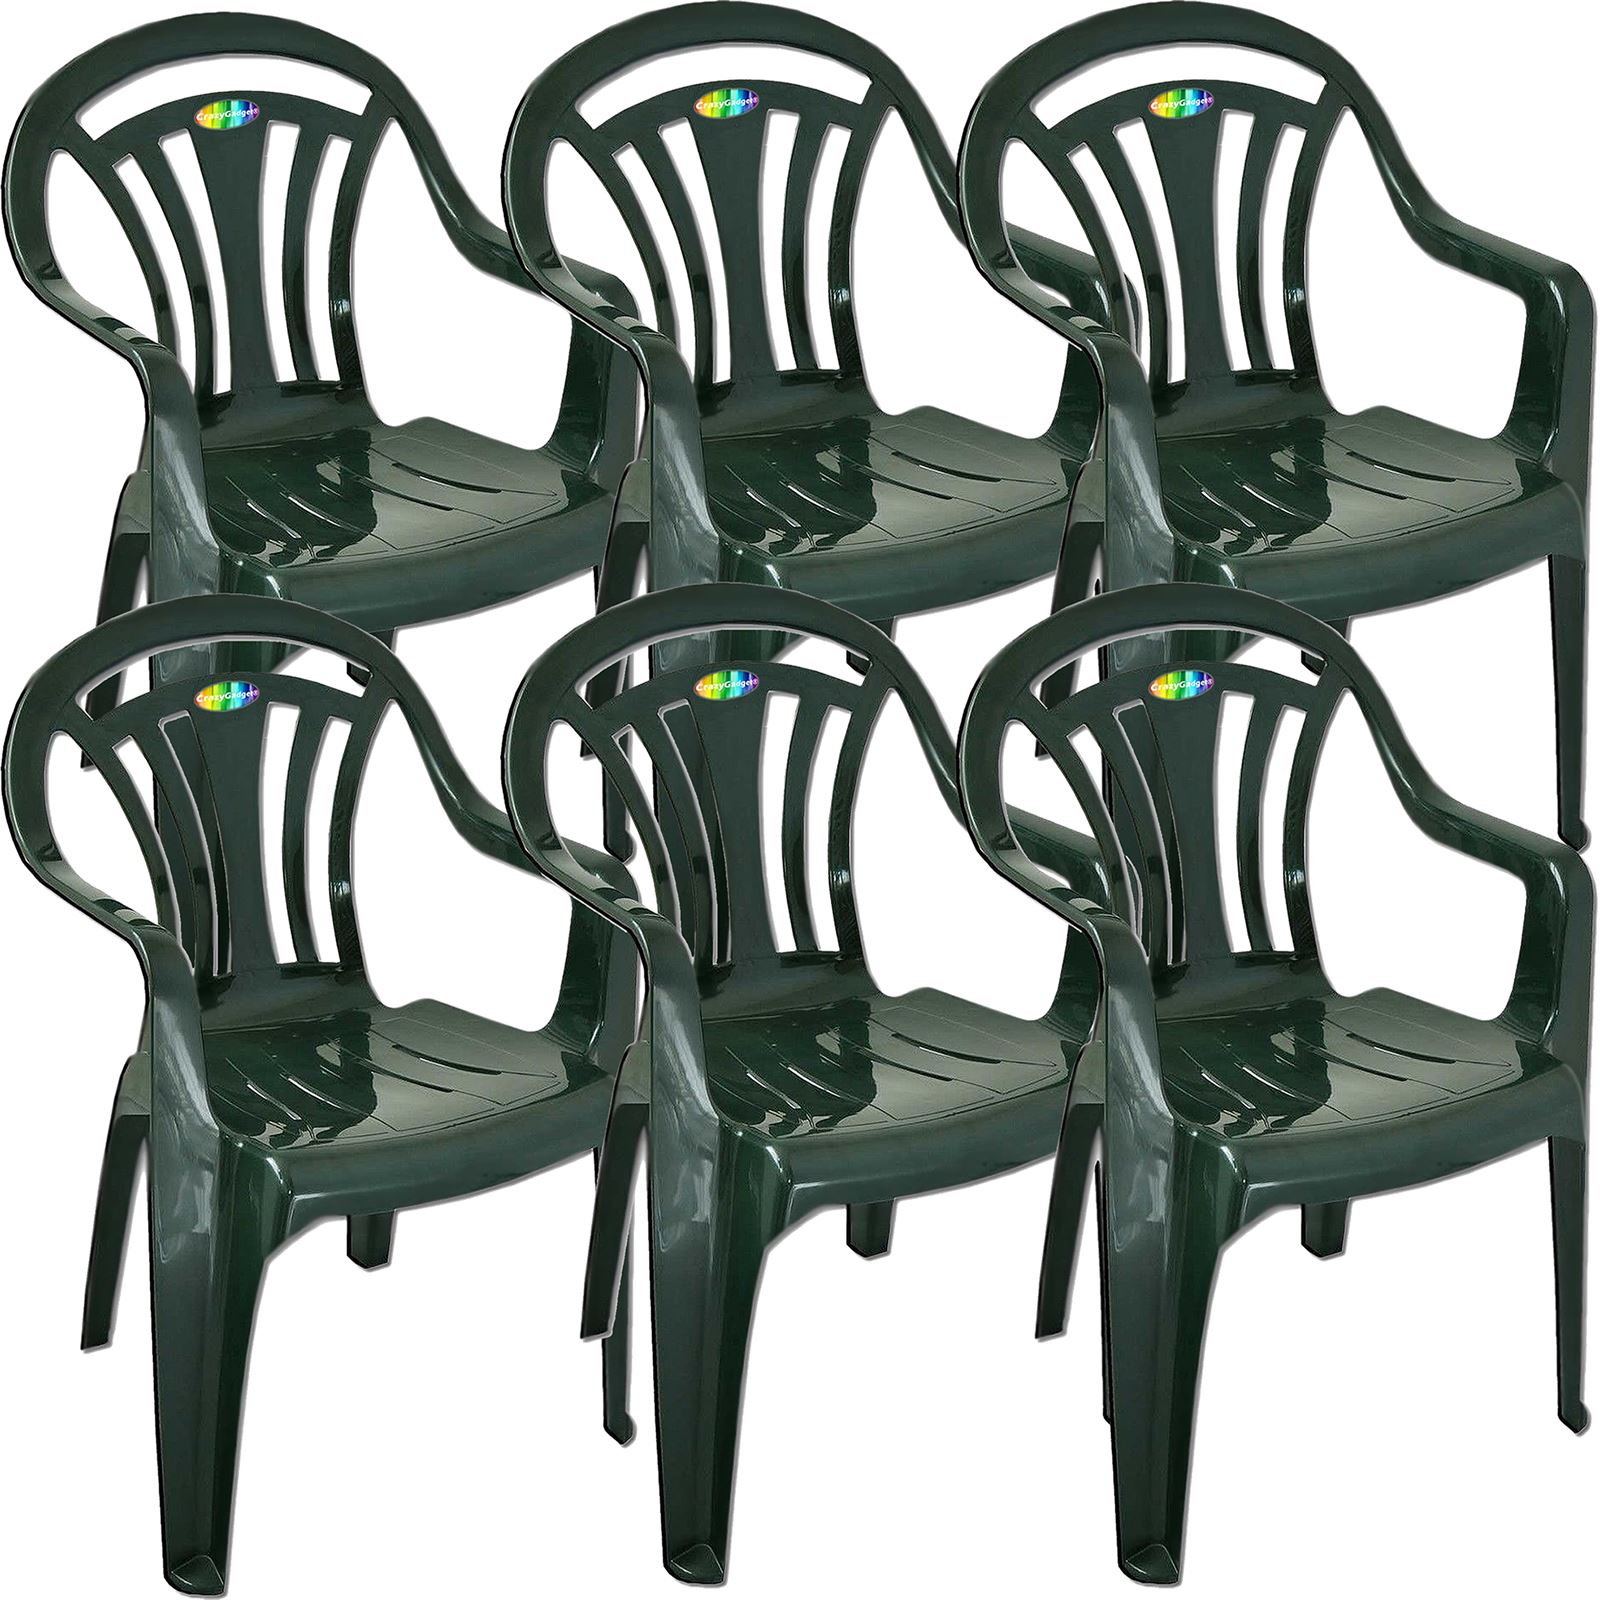 Low Back Lawn Chairs Plastic Garden Low Back Chair Stackable Patio Outdoor